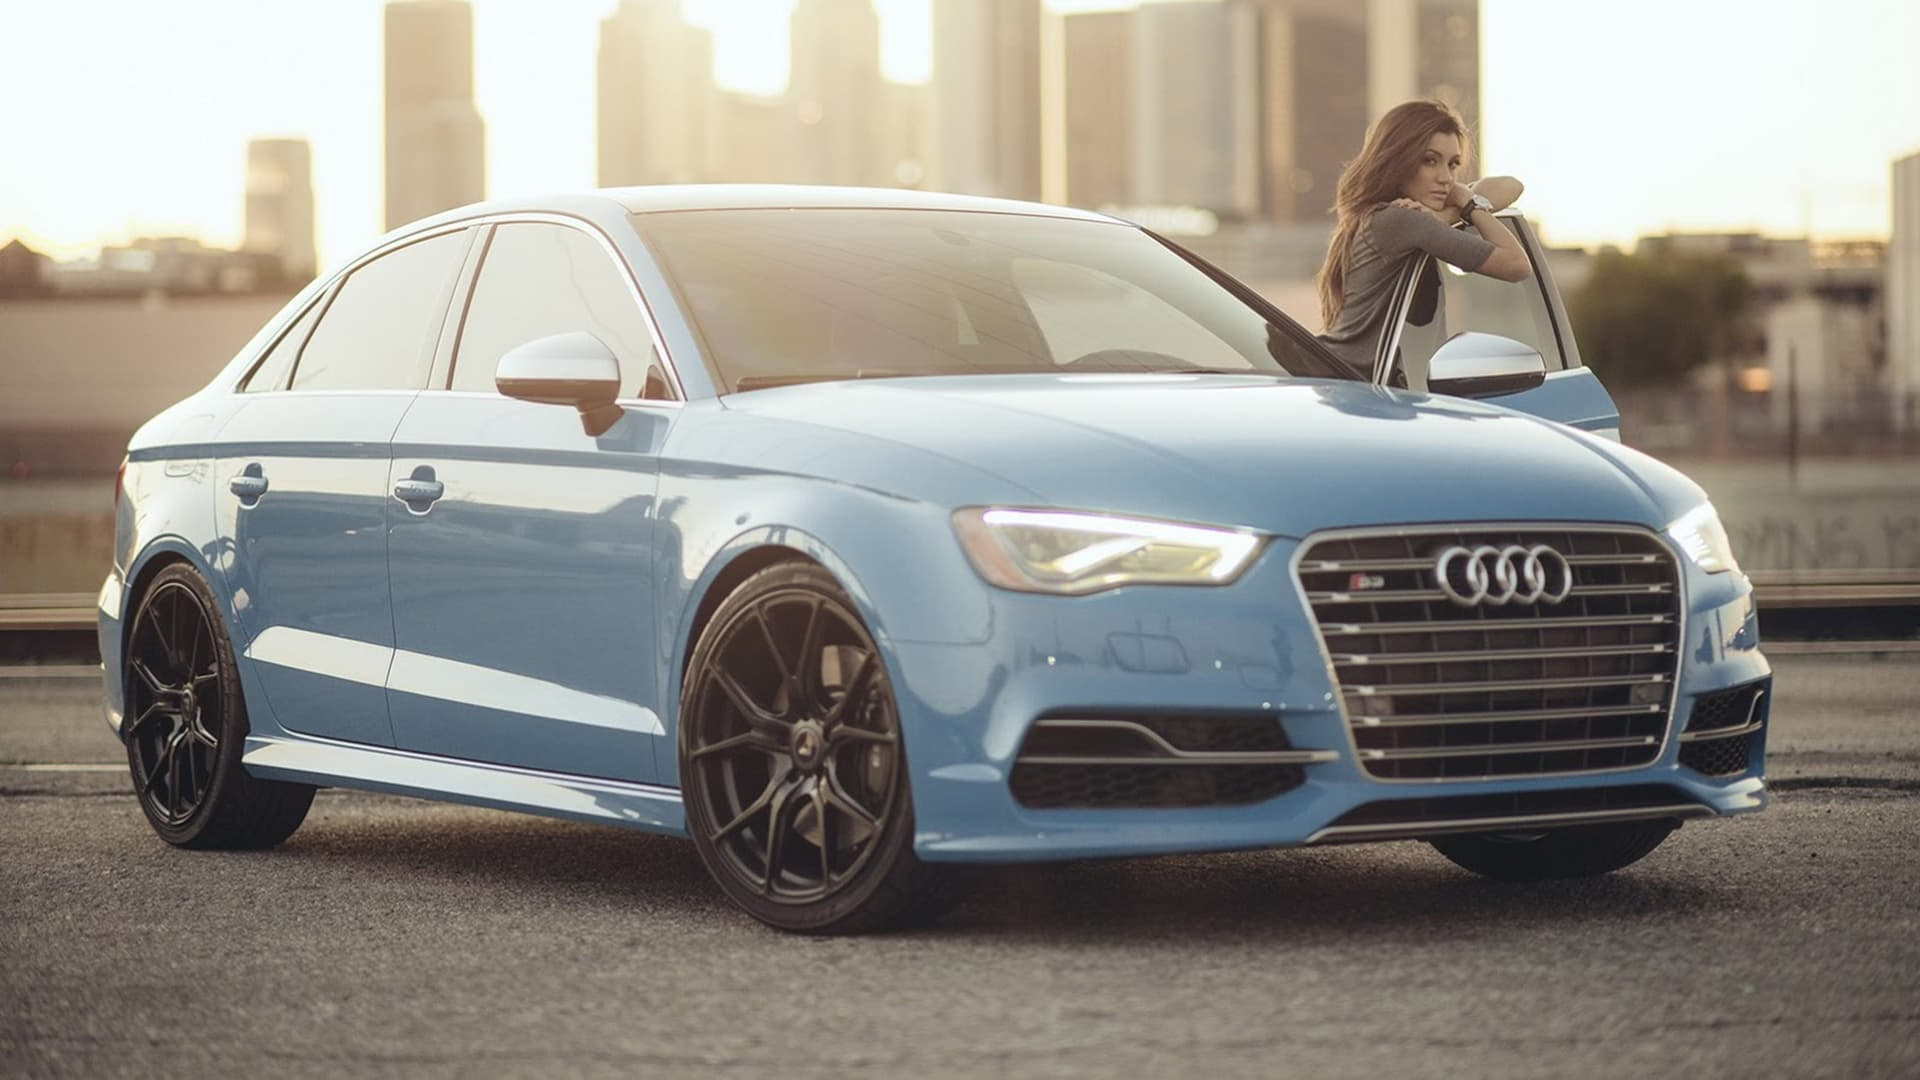 2016 audi s3 sedan wallpapers high quality resolution download